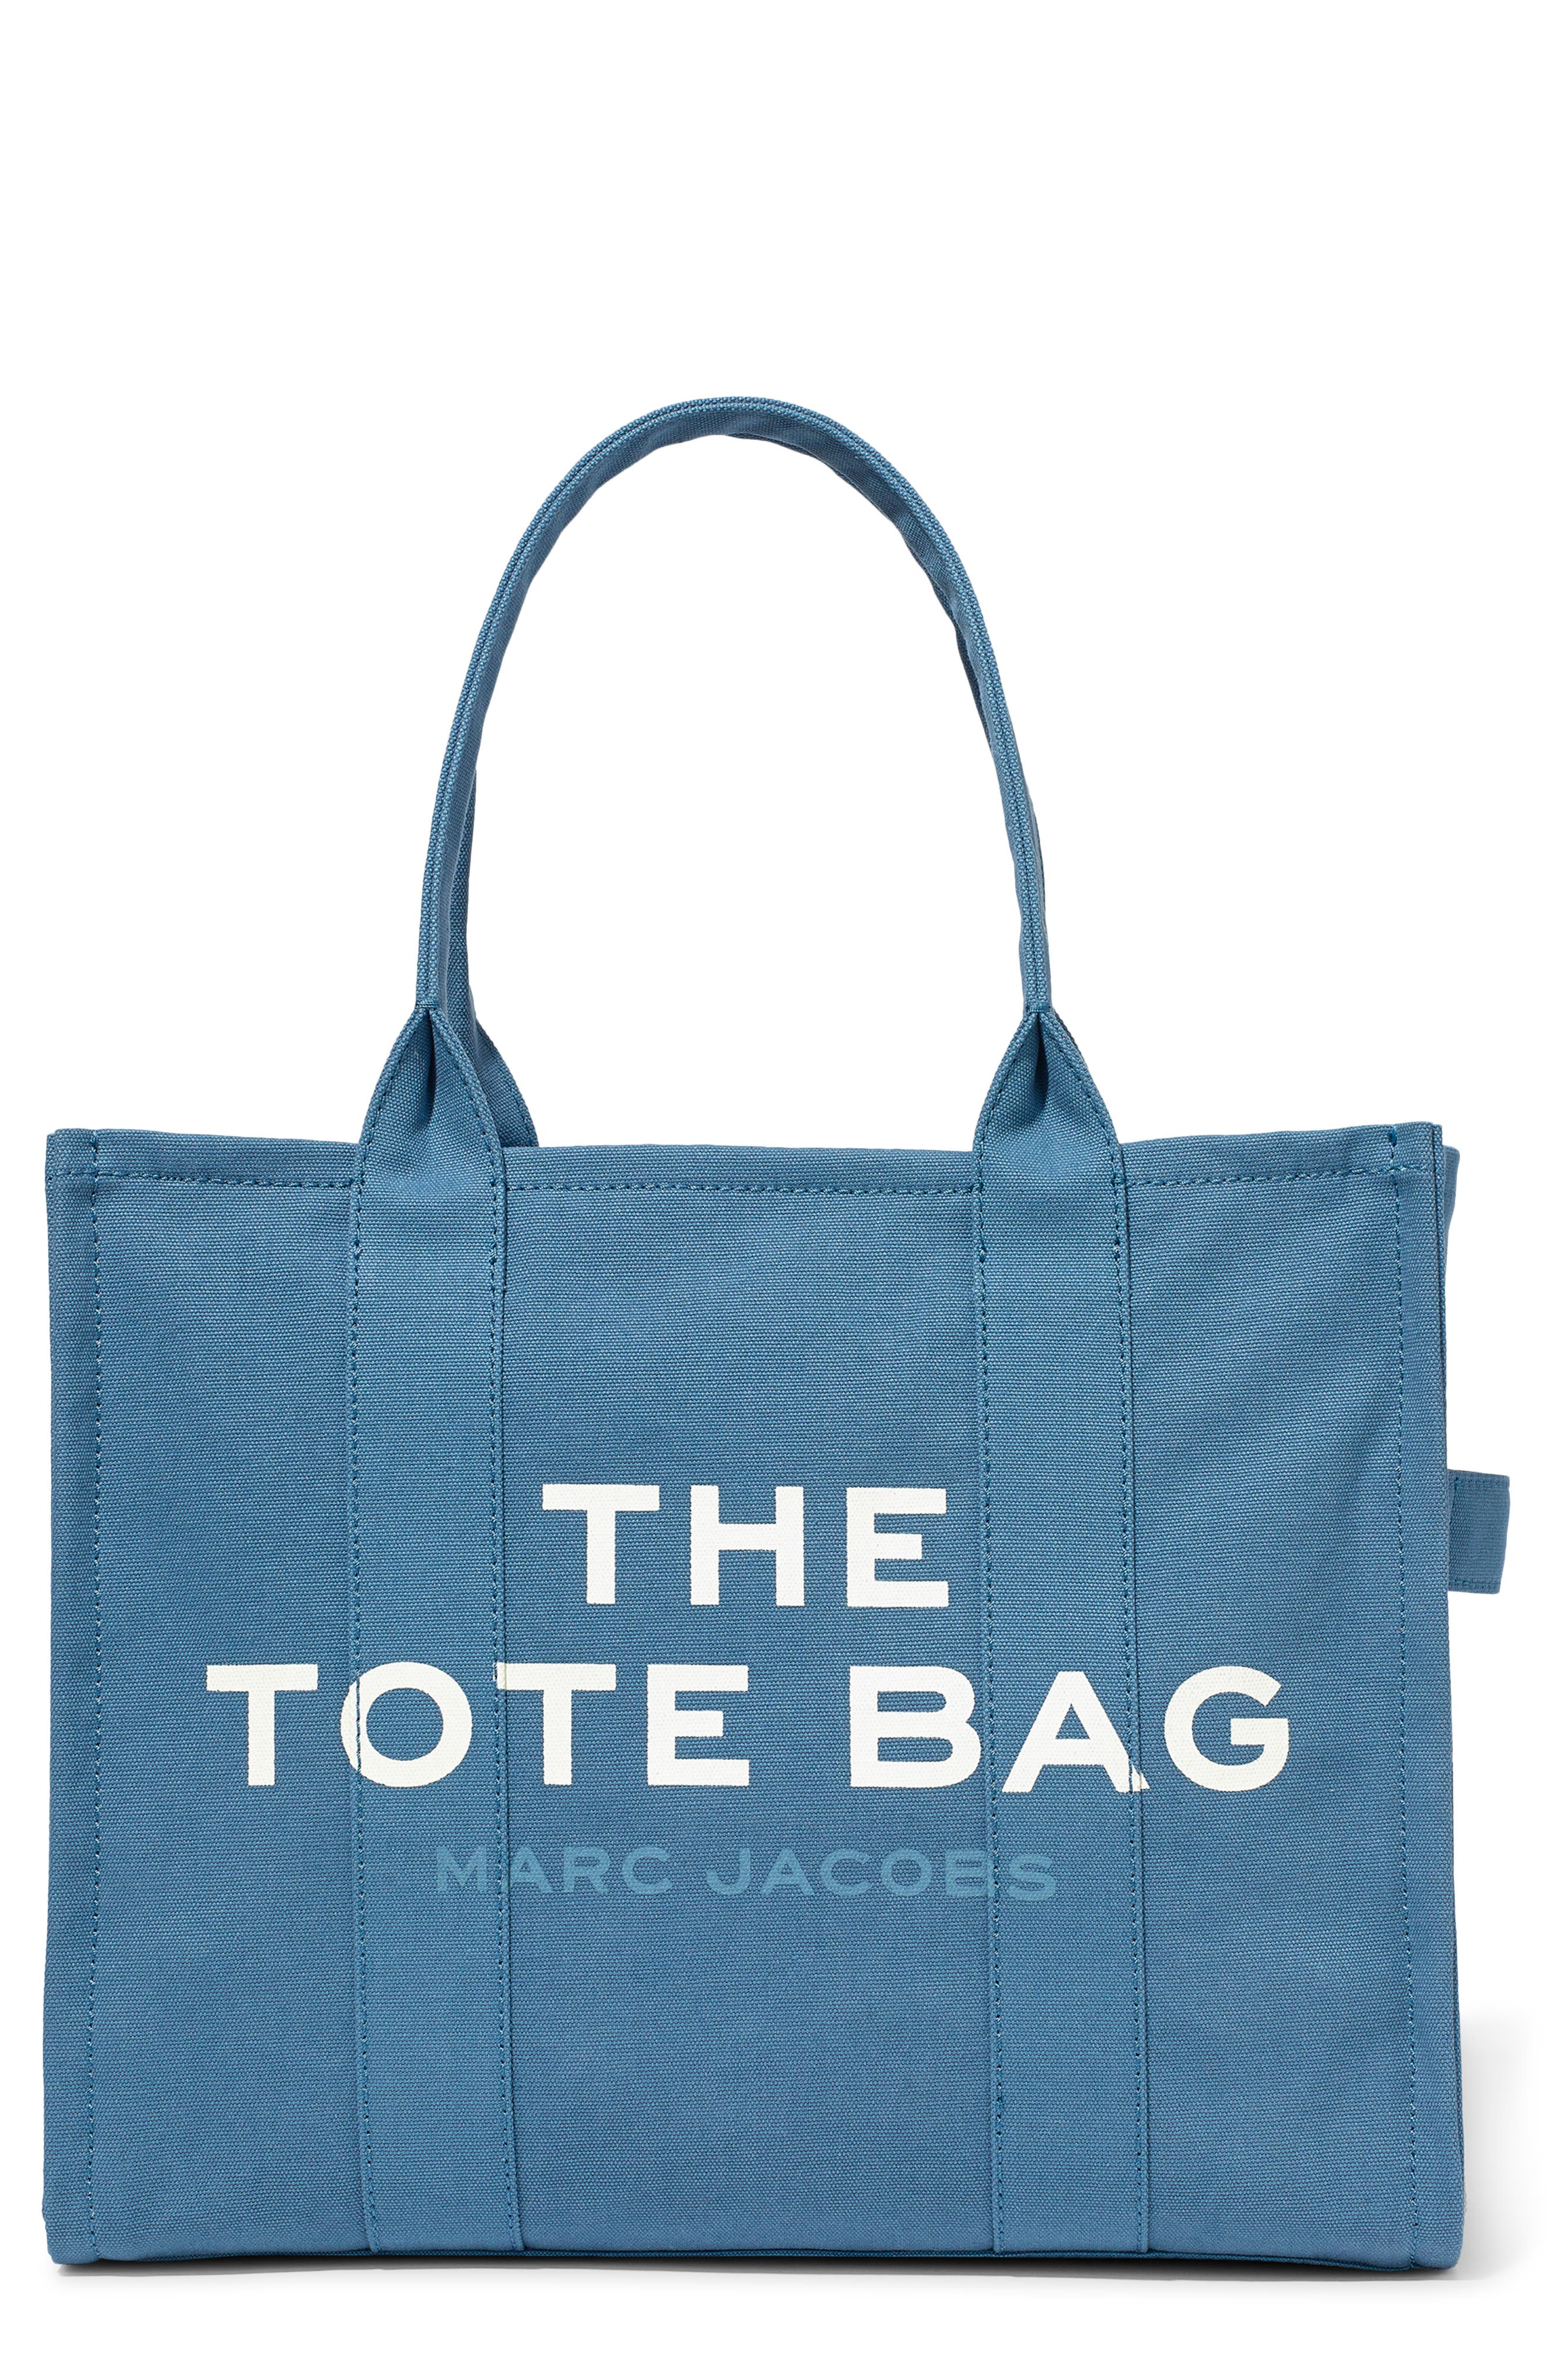 Large Canvas Tote Bag Canvas Bags Large Tote Bag Canvas Tote Women Tote Bag With Pockets Bag For School Bags For Women Fabric Bags Tote Bag